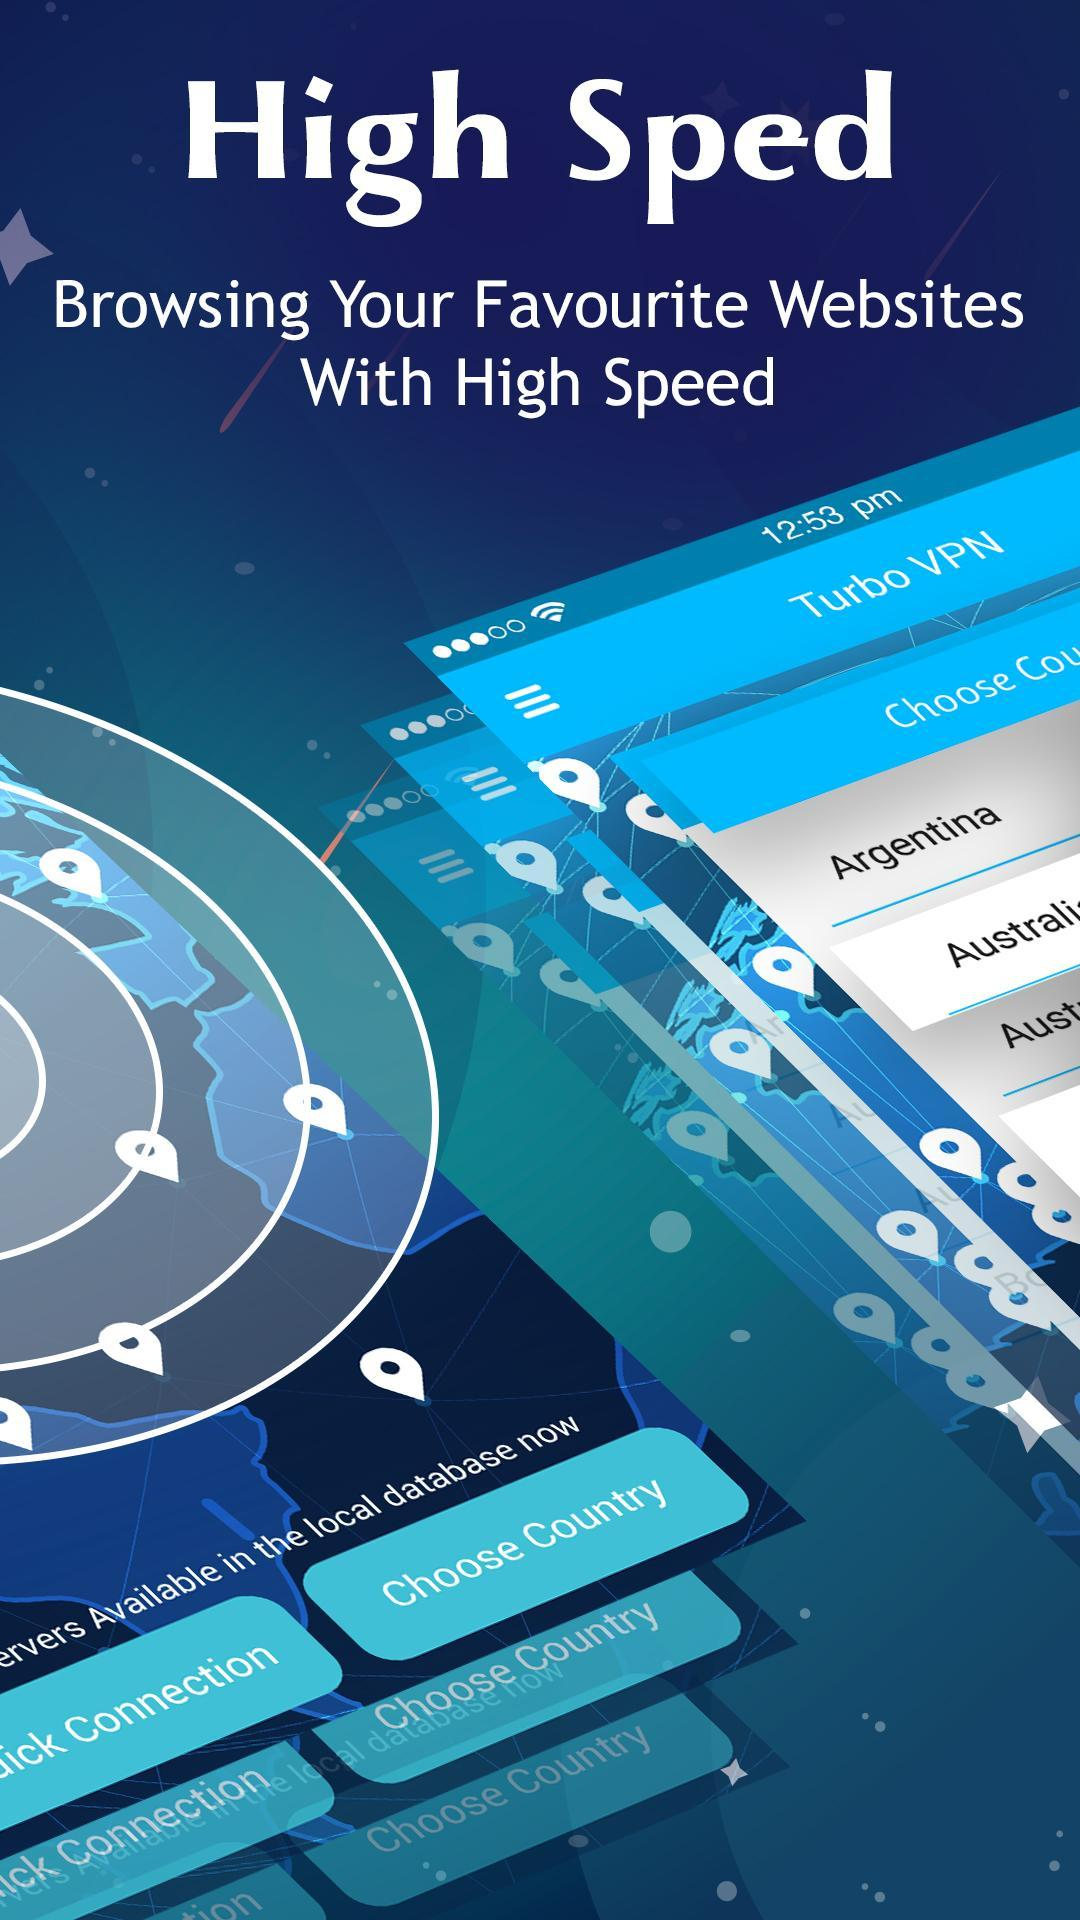 hotspot shield v6.9.1 mod apk download